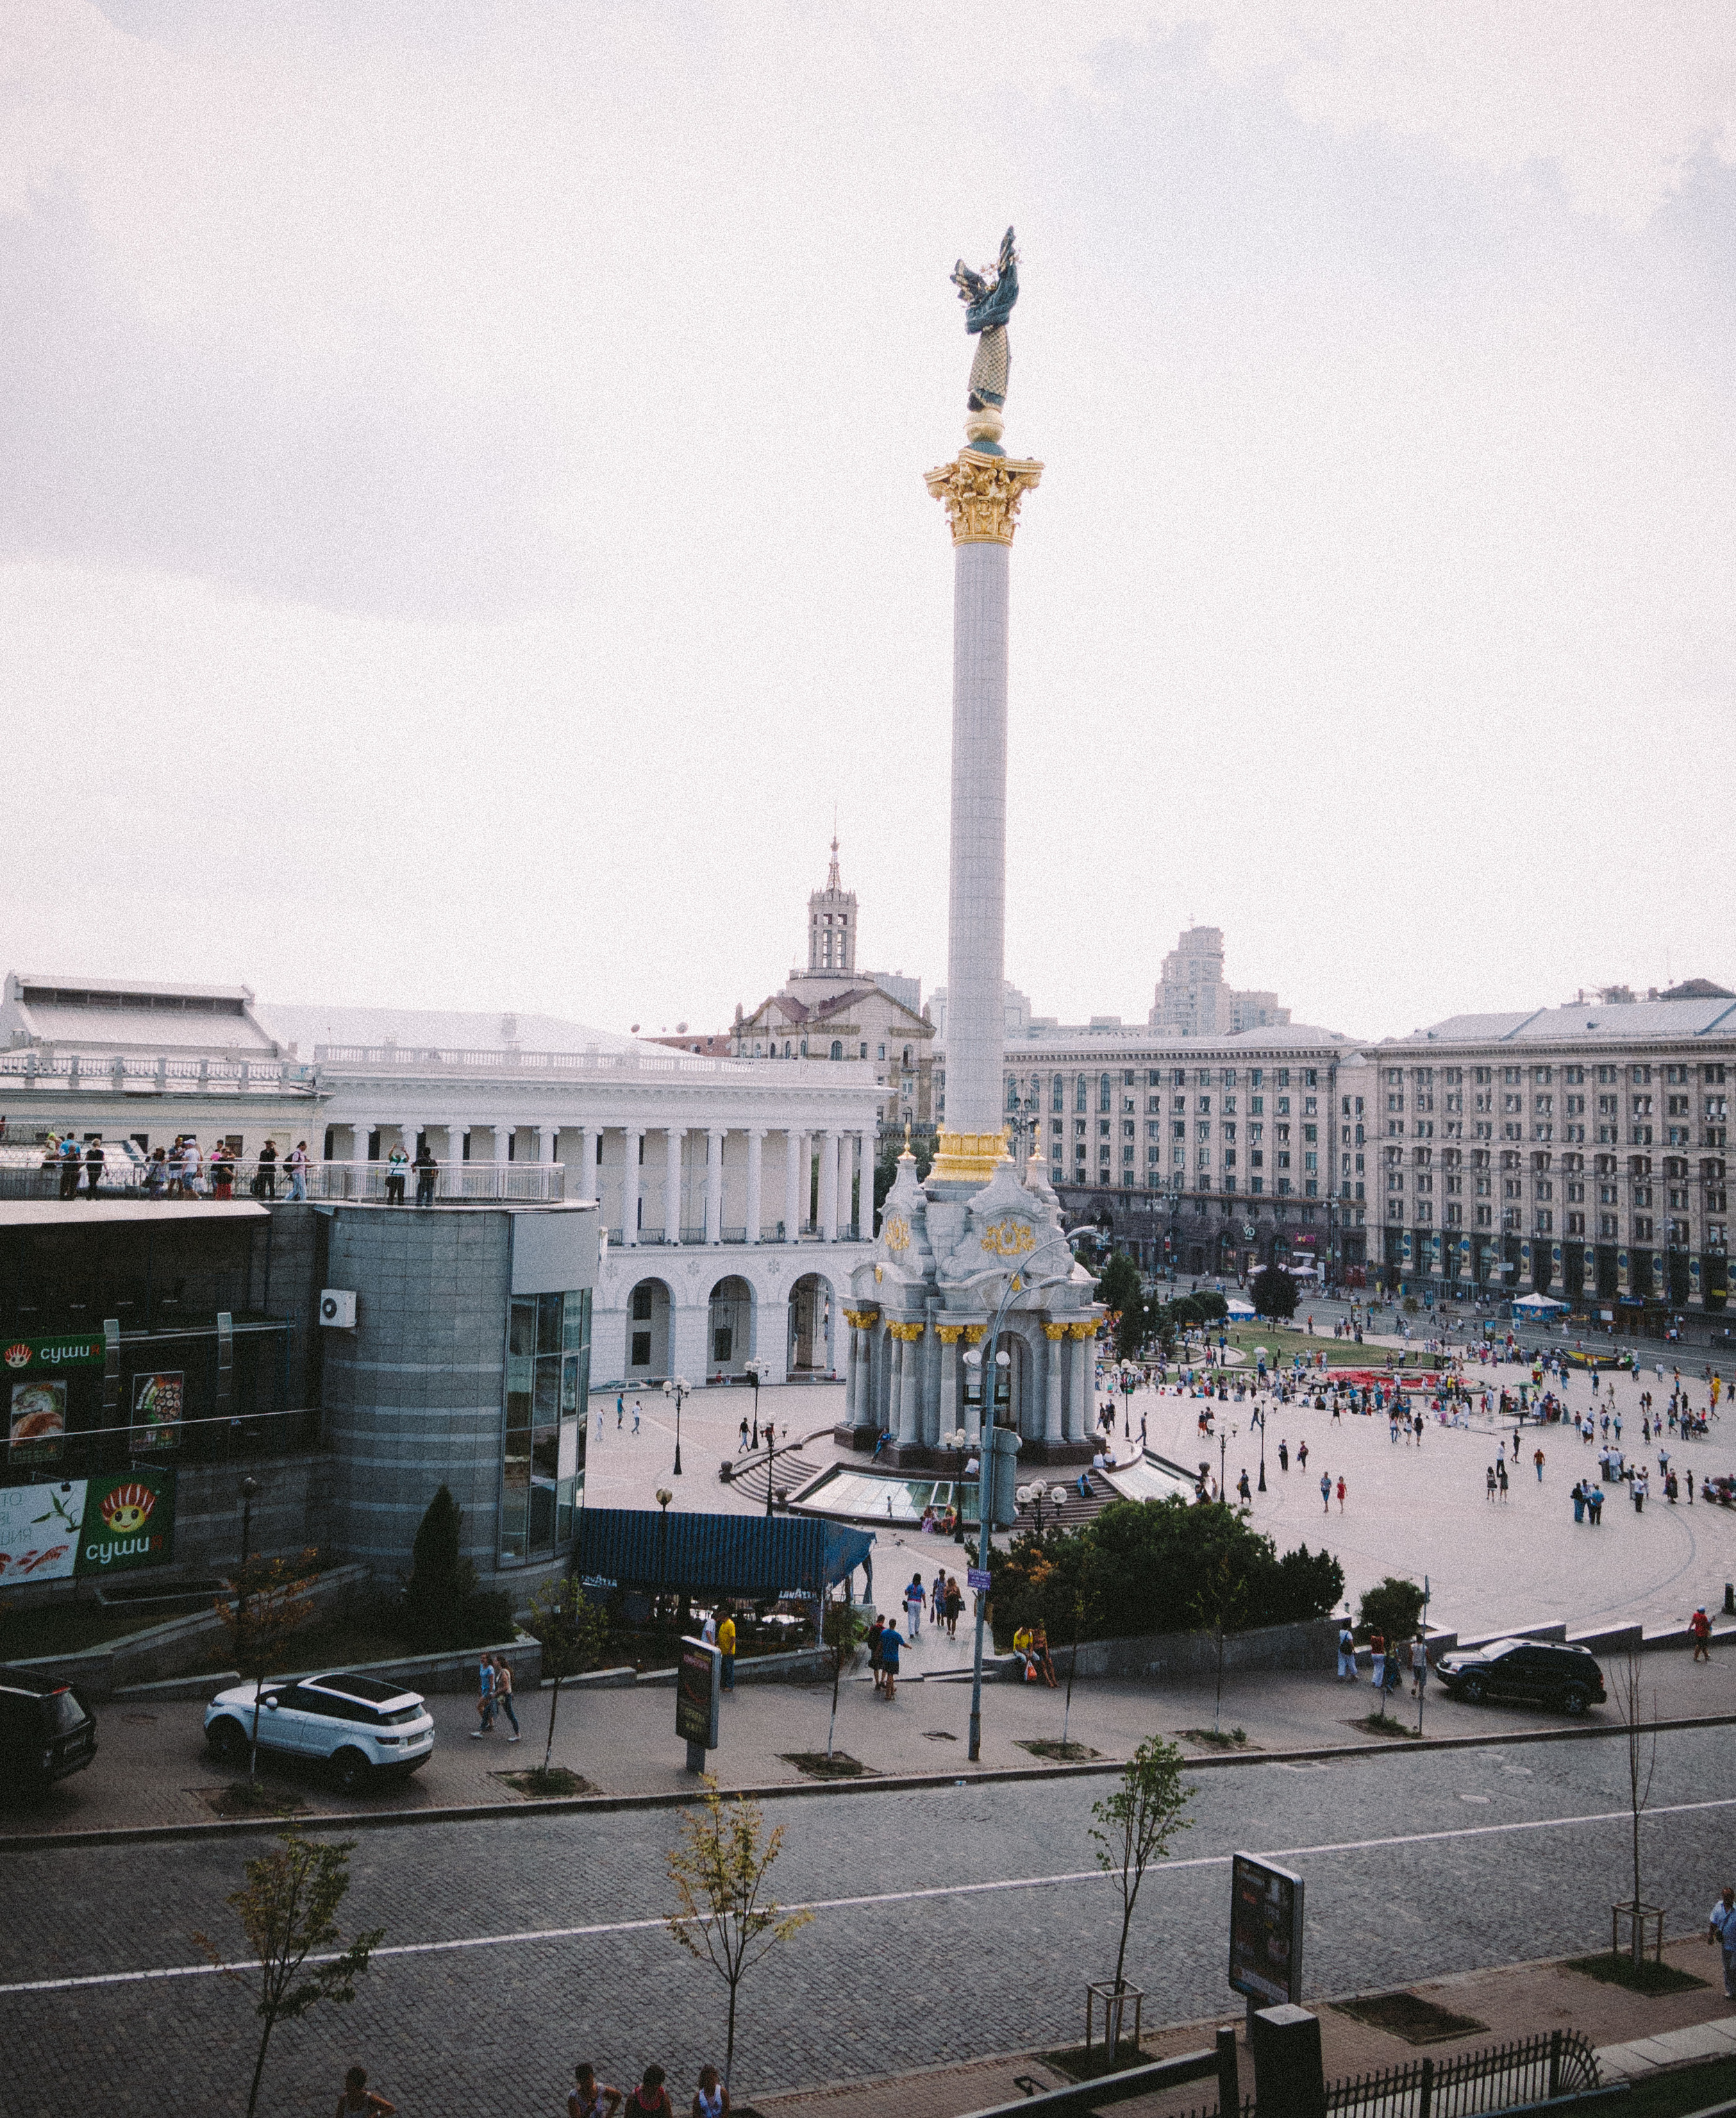 Maidan Nezalezhnosti (independence square). It got it's name when Ukraine reached independence in 1991. It was also the location of the Orange Revolution.